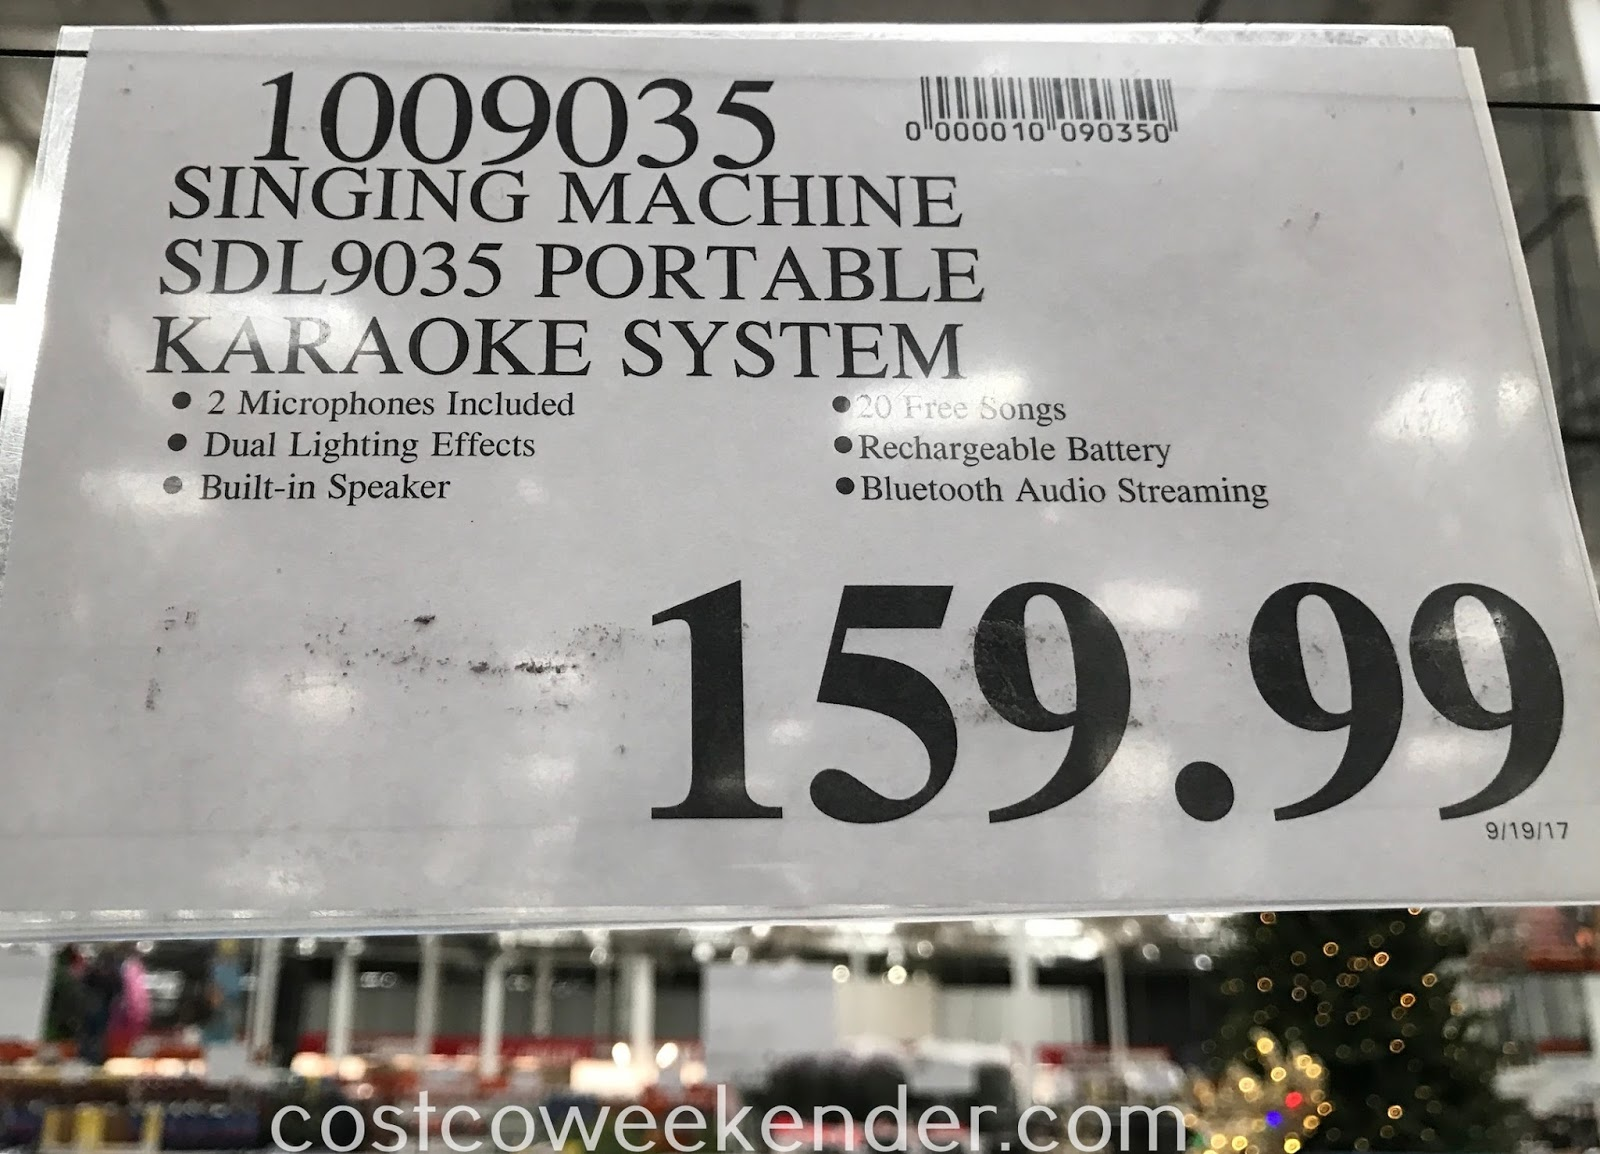 Deal for the Singing Machine Portable Hi-Def Karaoke System SDL9035 at Costco